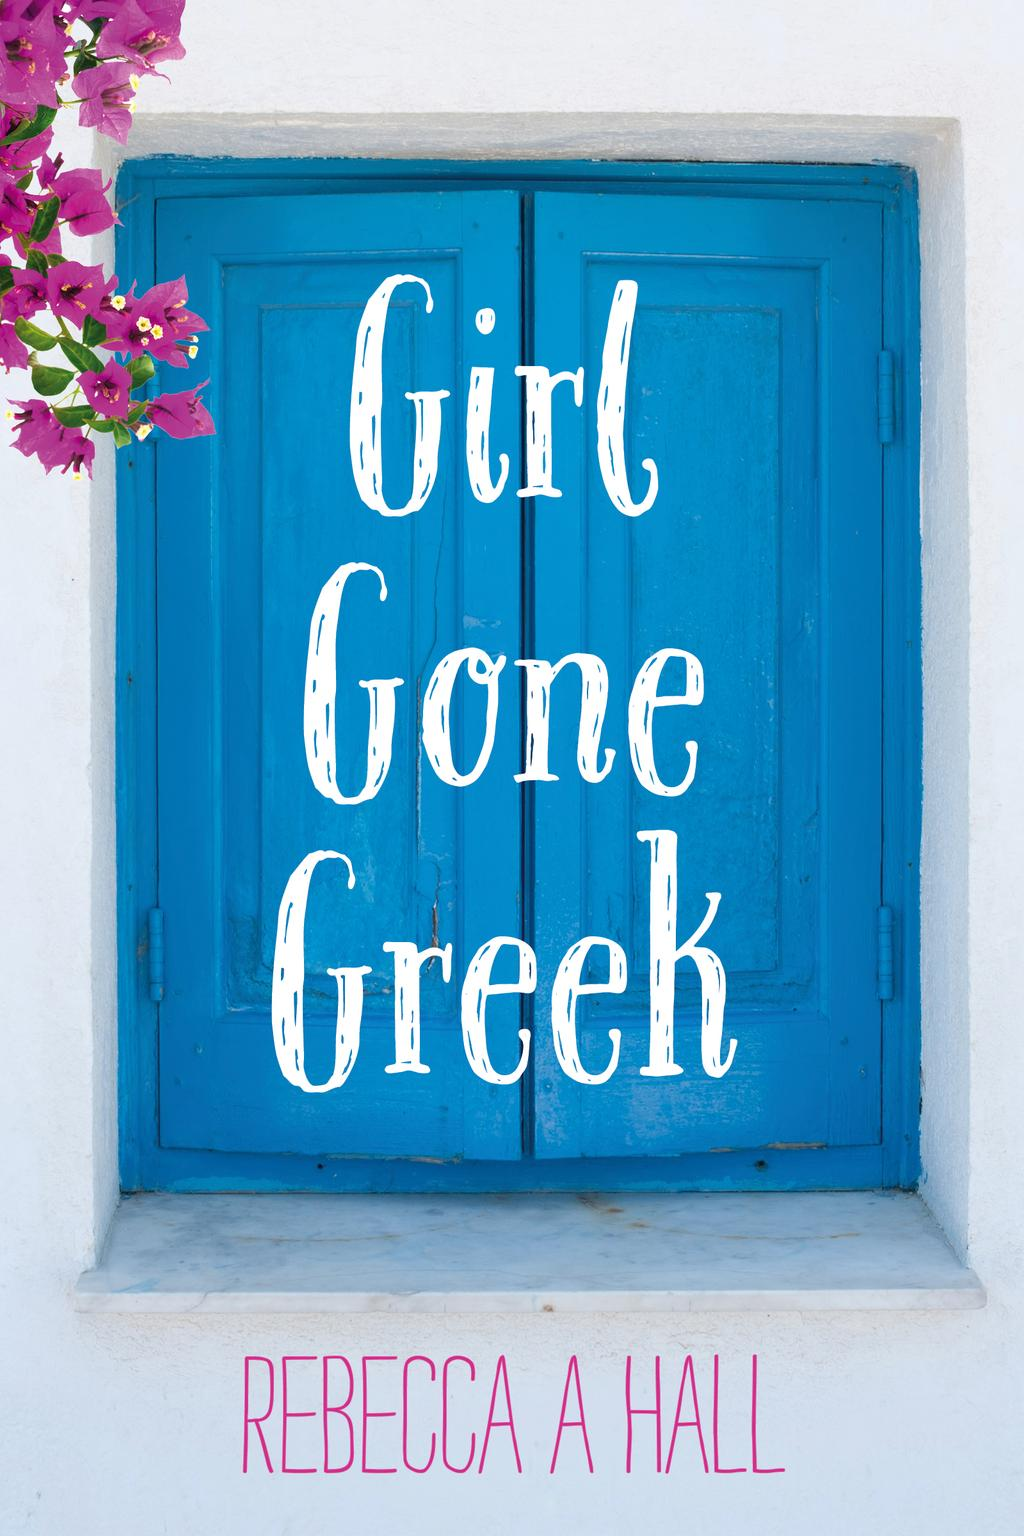 An interculturalist in Greece